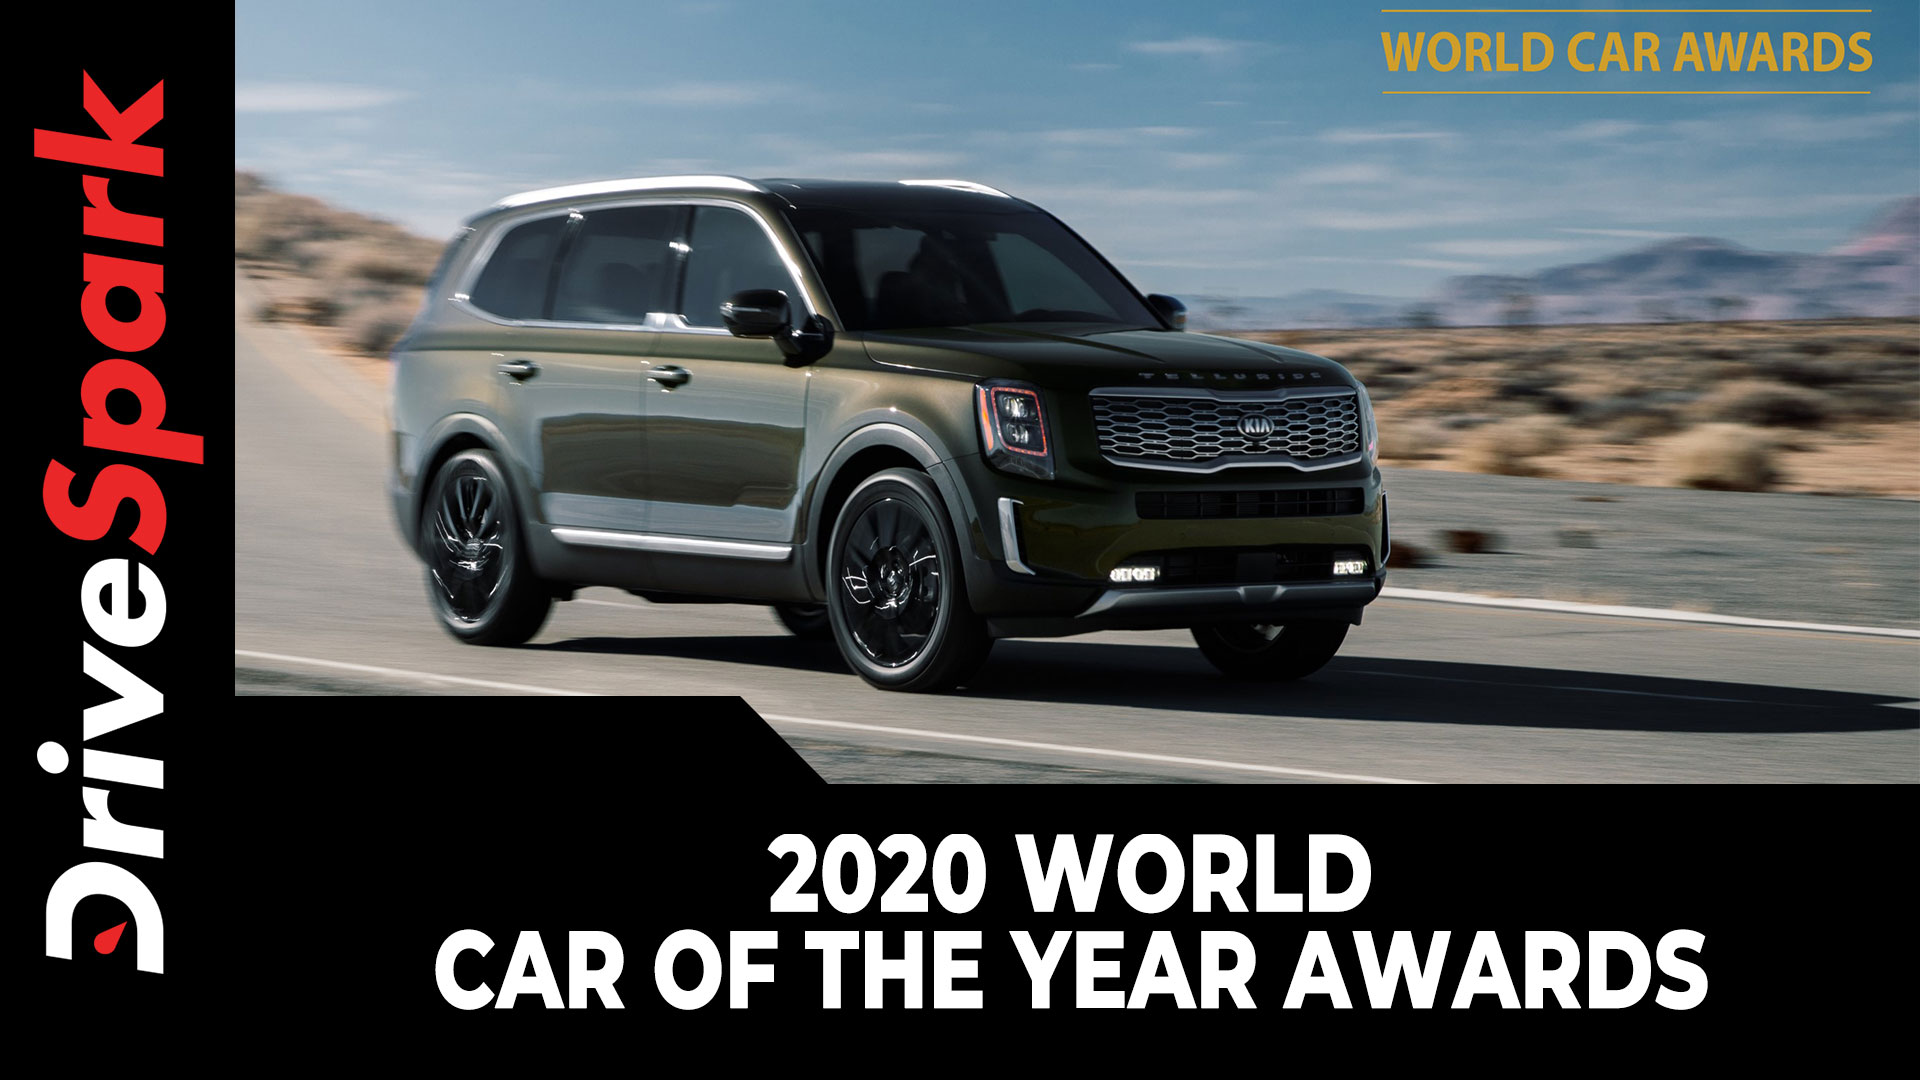 2020 World Car Of The Year Awards | Kia Telluride, Kia Soul EV, Porsche Taycan & Mazda 3 Winners